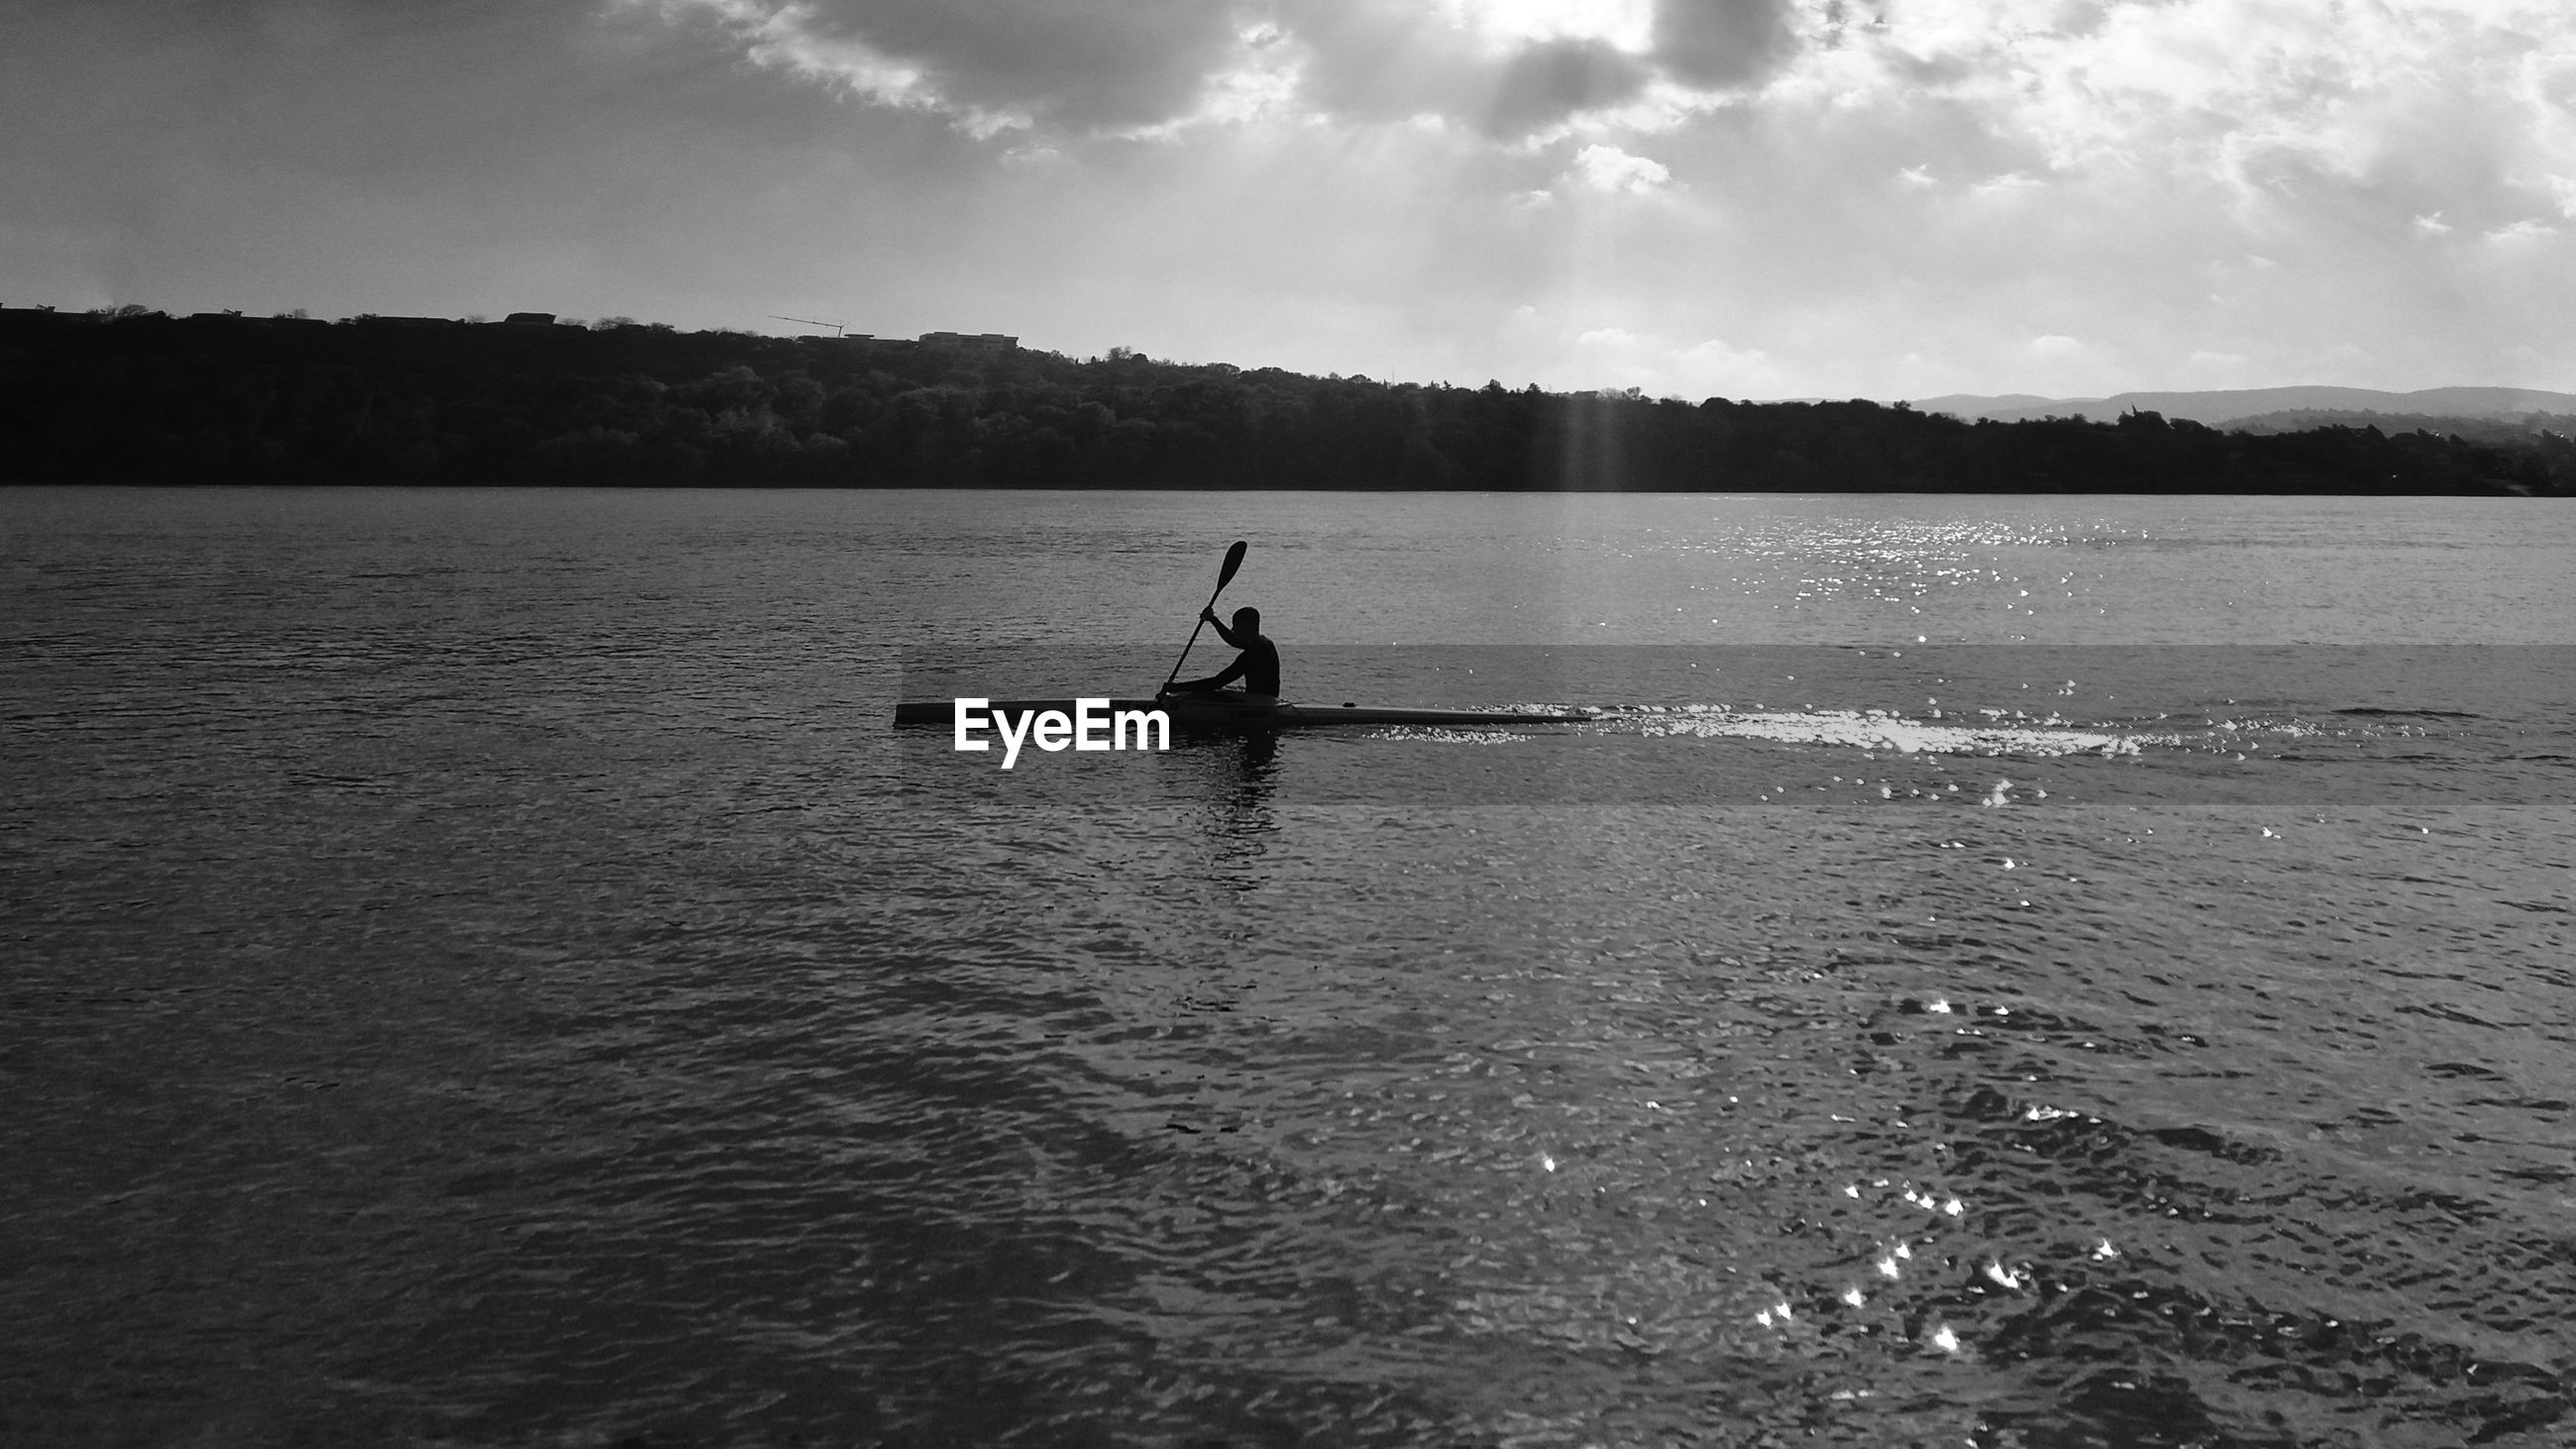 Silhouette man sculling in lake against sky